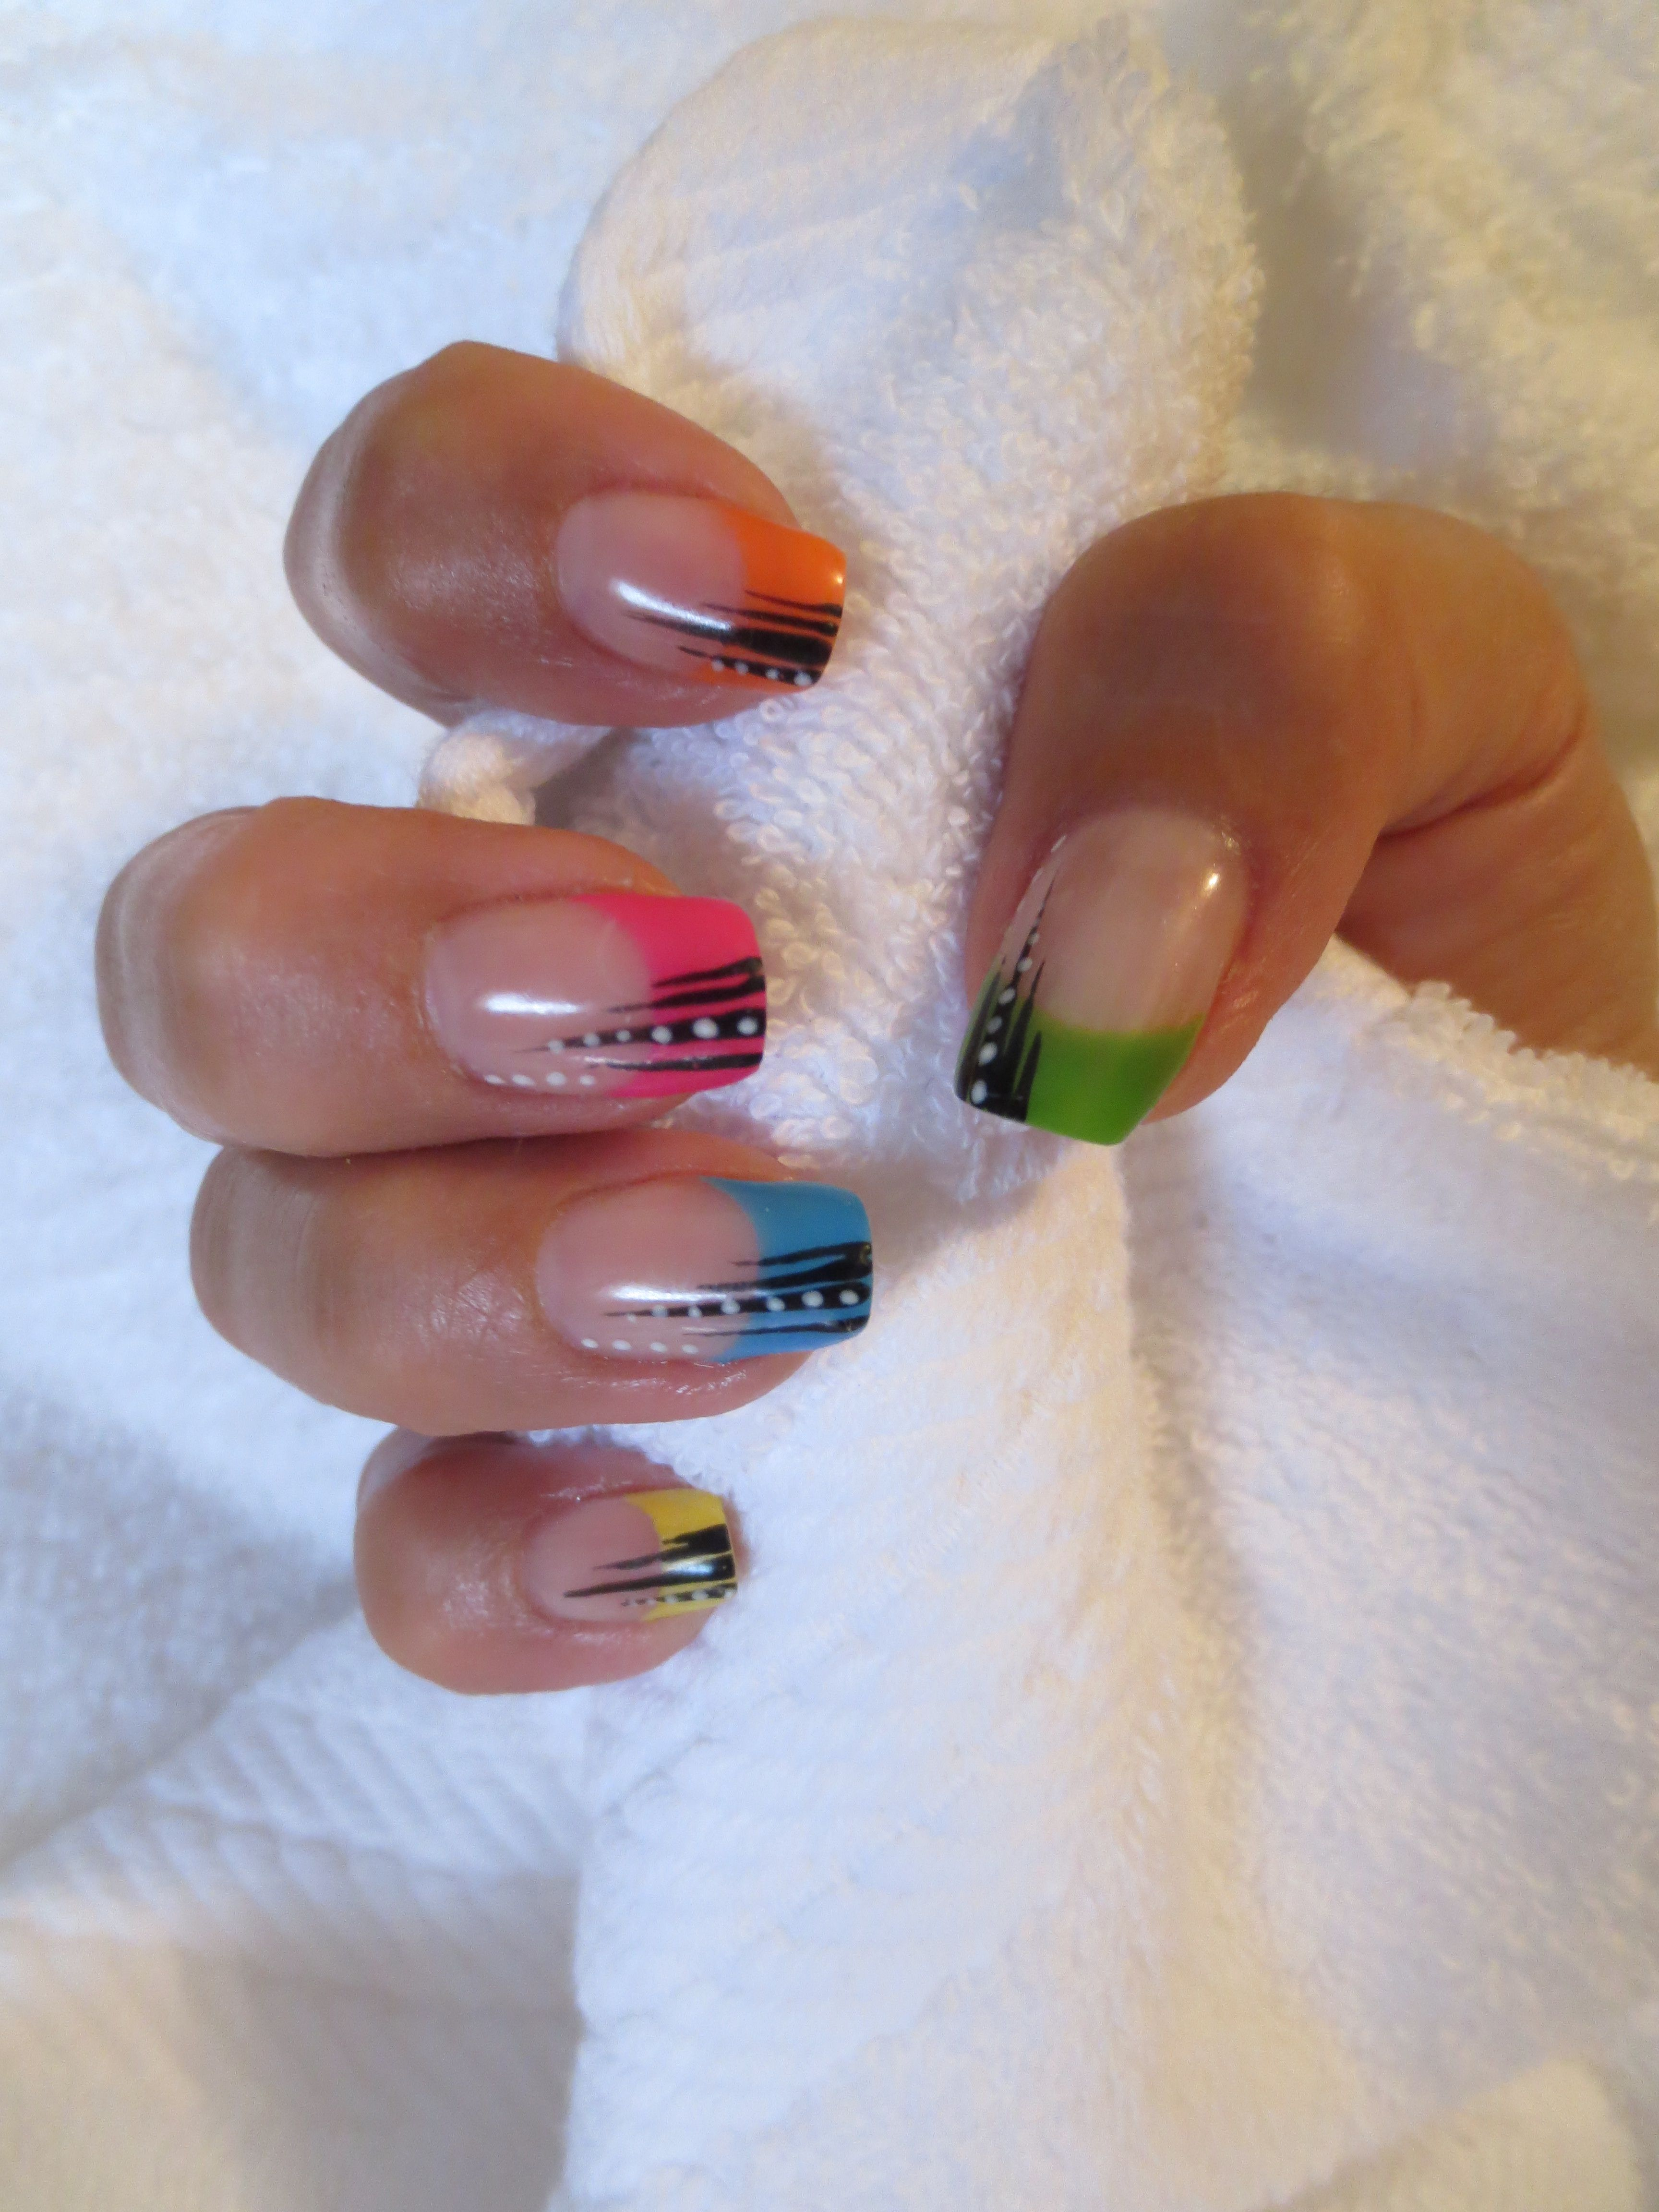 pictures of nail art designs | Neon Tips Nail Art Design by Delee ...